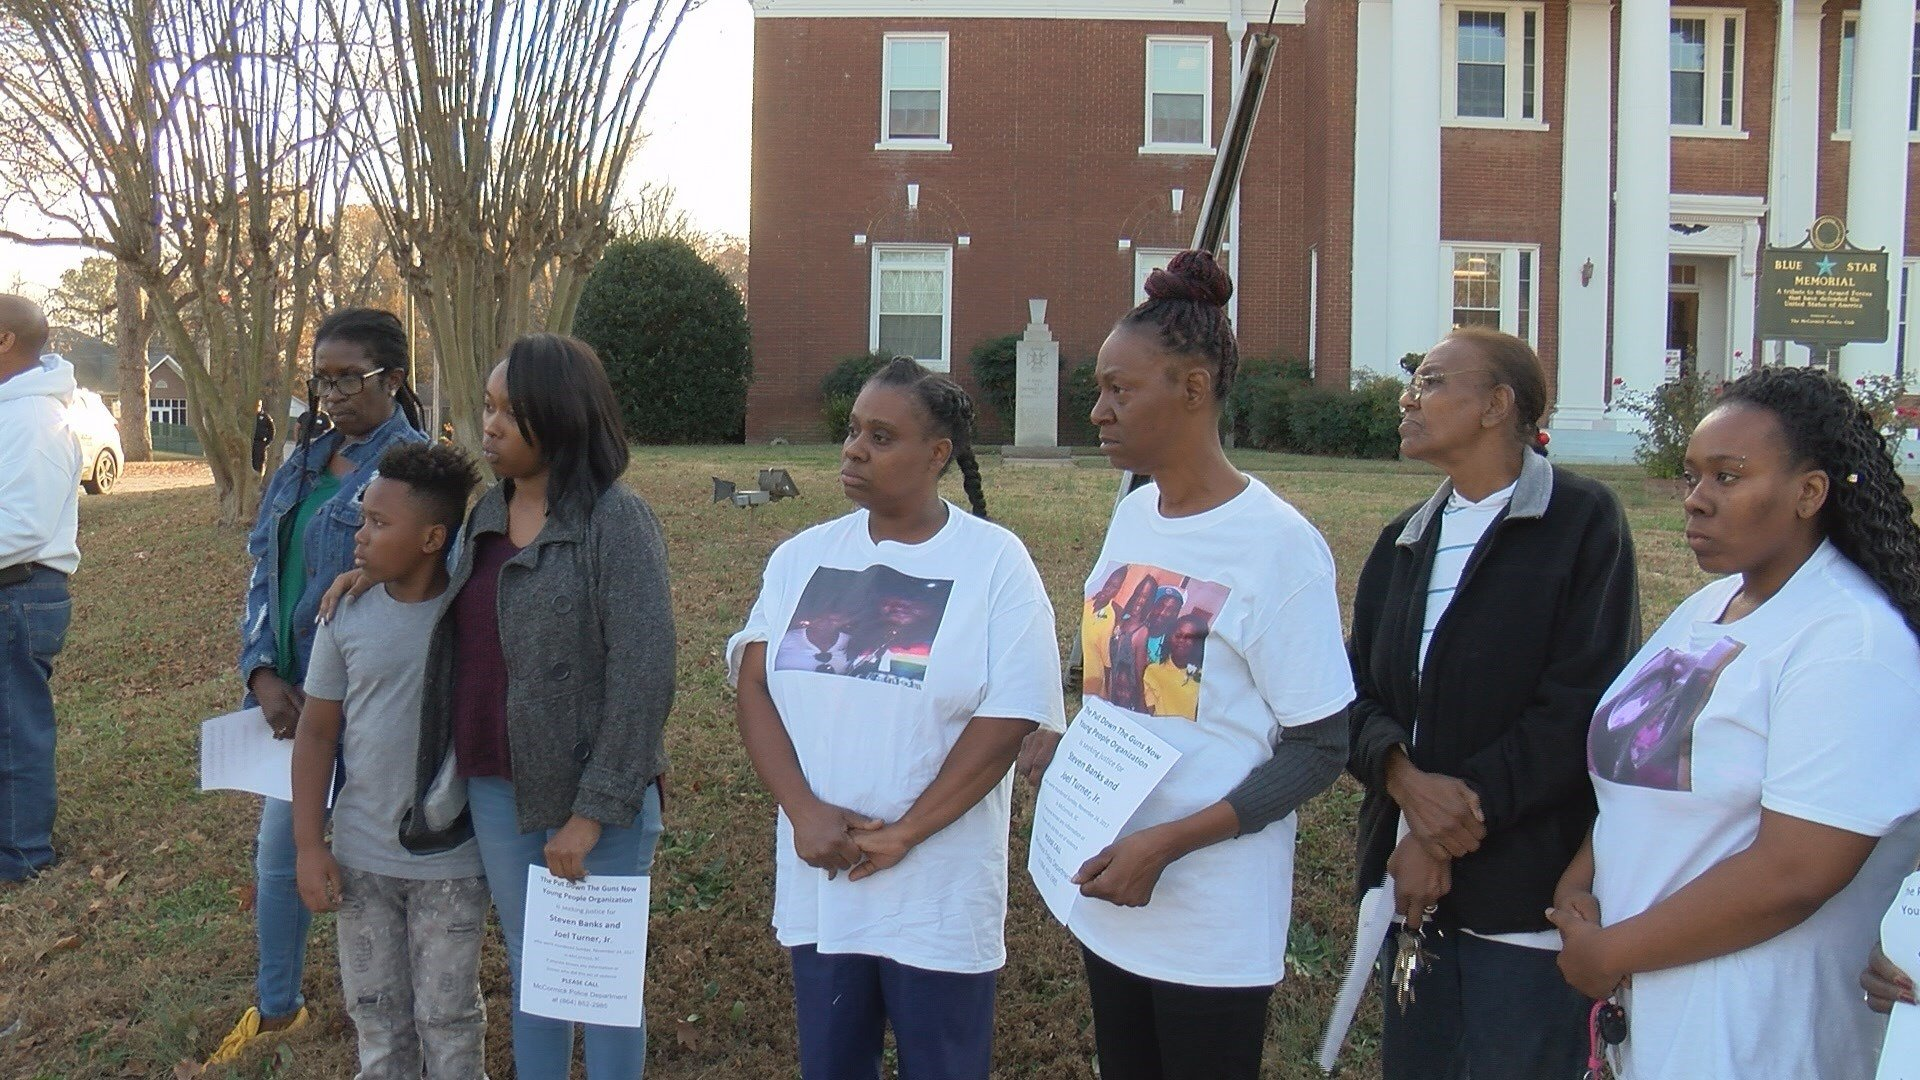 Put Down The Guns Now Rally held in McCormick County (WFXG)